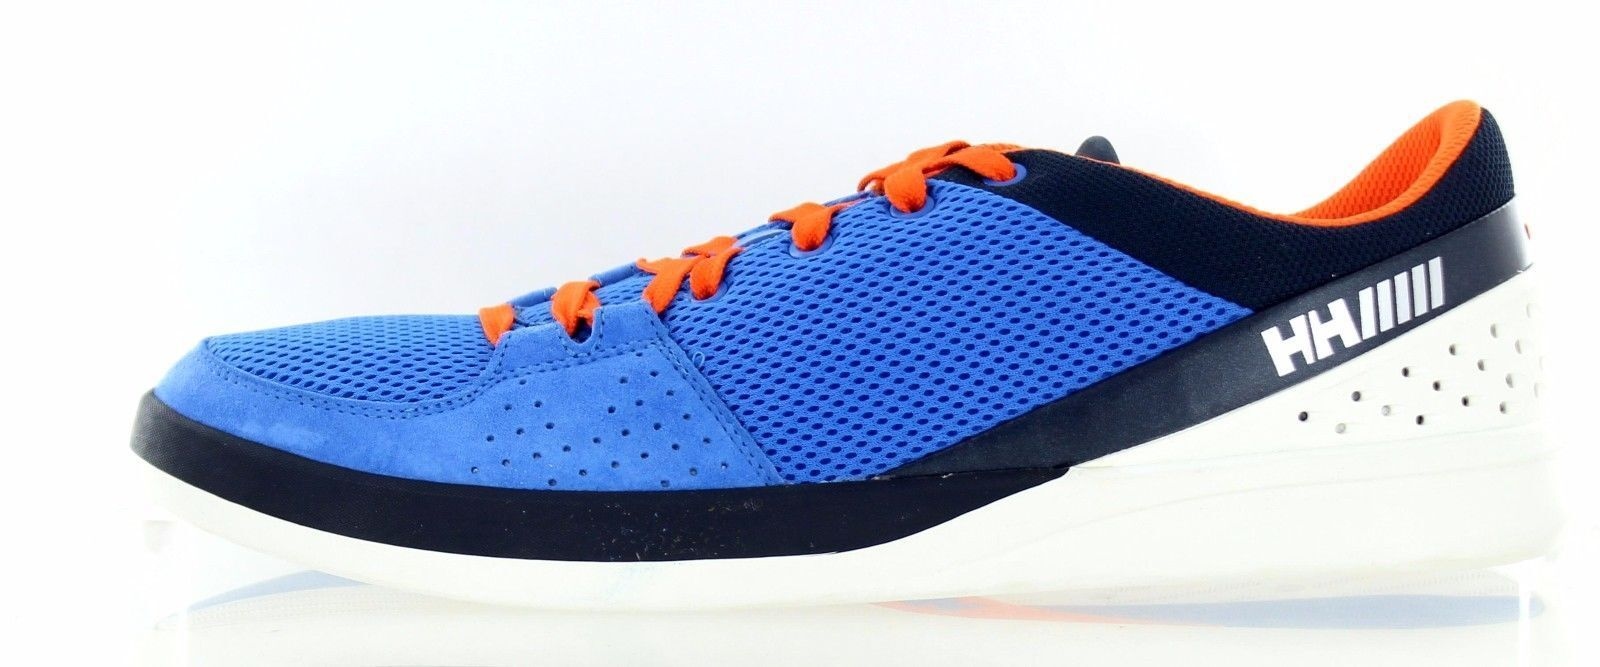 Helly Hansen Mens HH 5.5M Water shoes Racer bluee Navy Magma Size 11.5 M